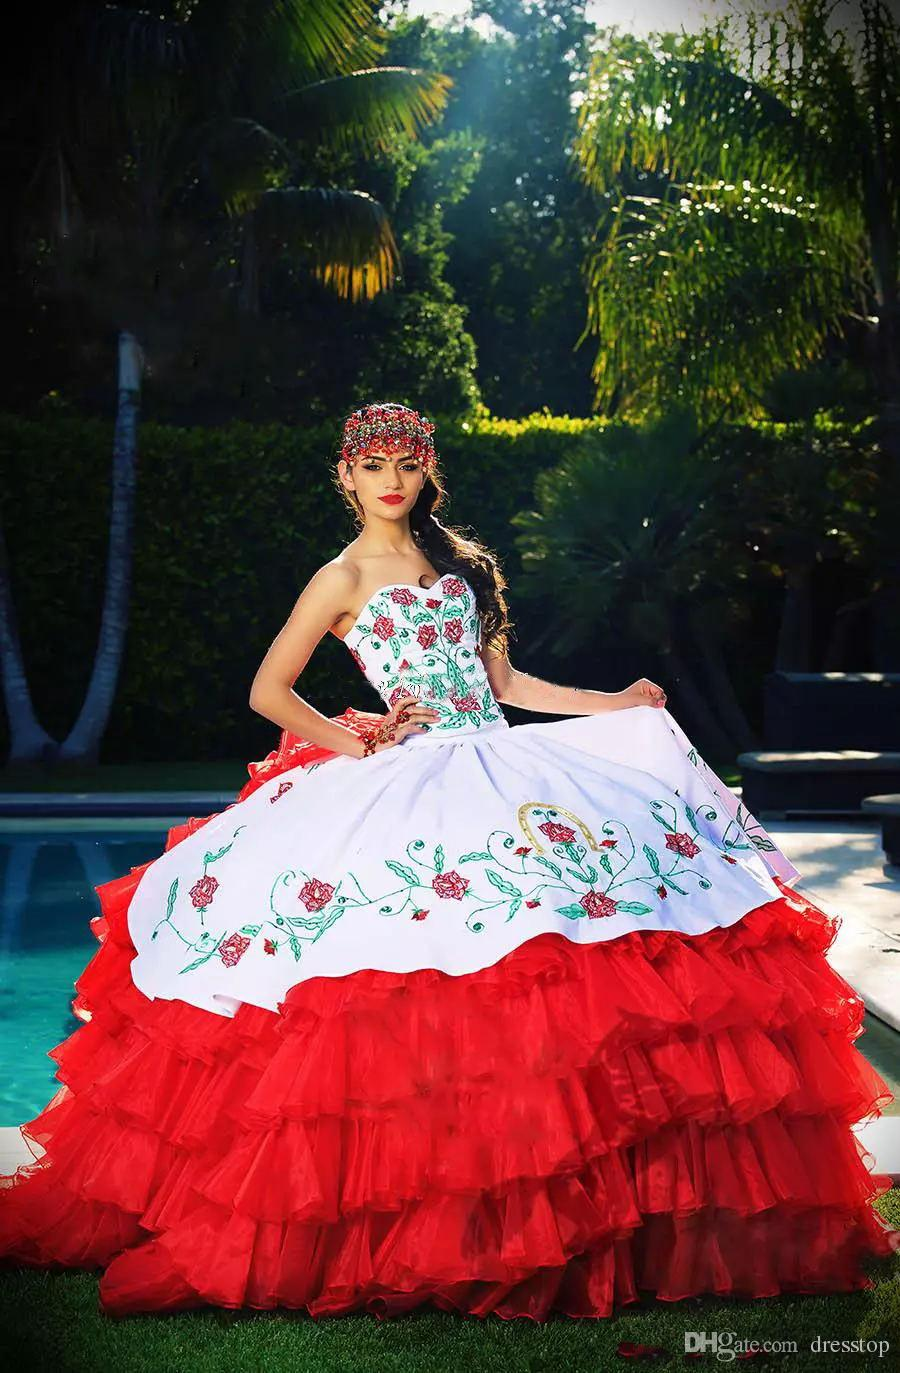 a131e23d7ba 2017 Ball Gown Quinceanera Dresses White And Red Tiered Draped Sweetheart  Embroidery New Formal Dress Sweet 16 Prom Gown Yellow Quinceanera Dresses  Black ...